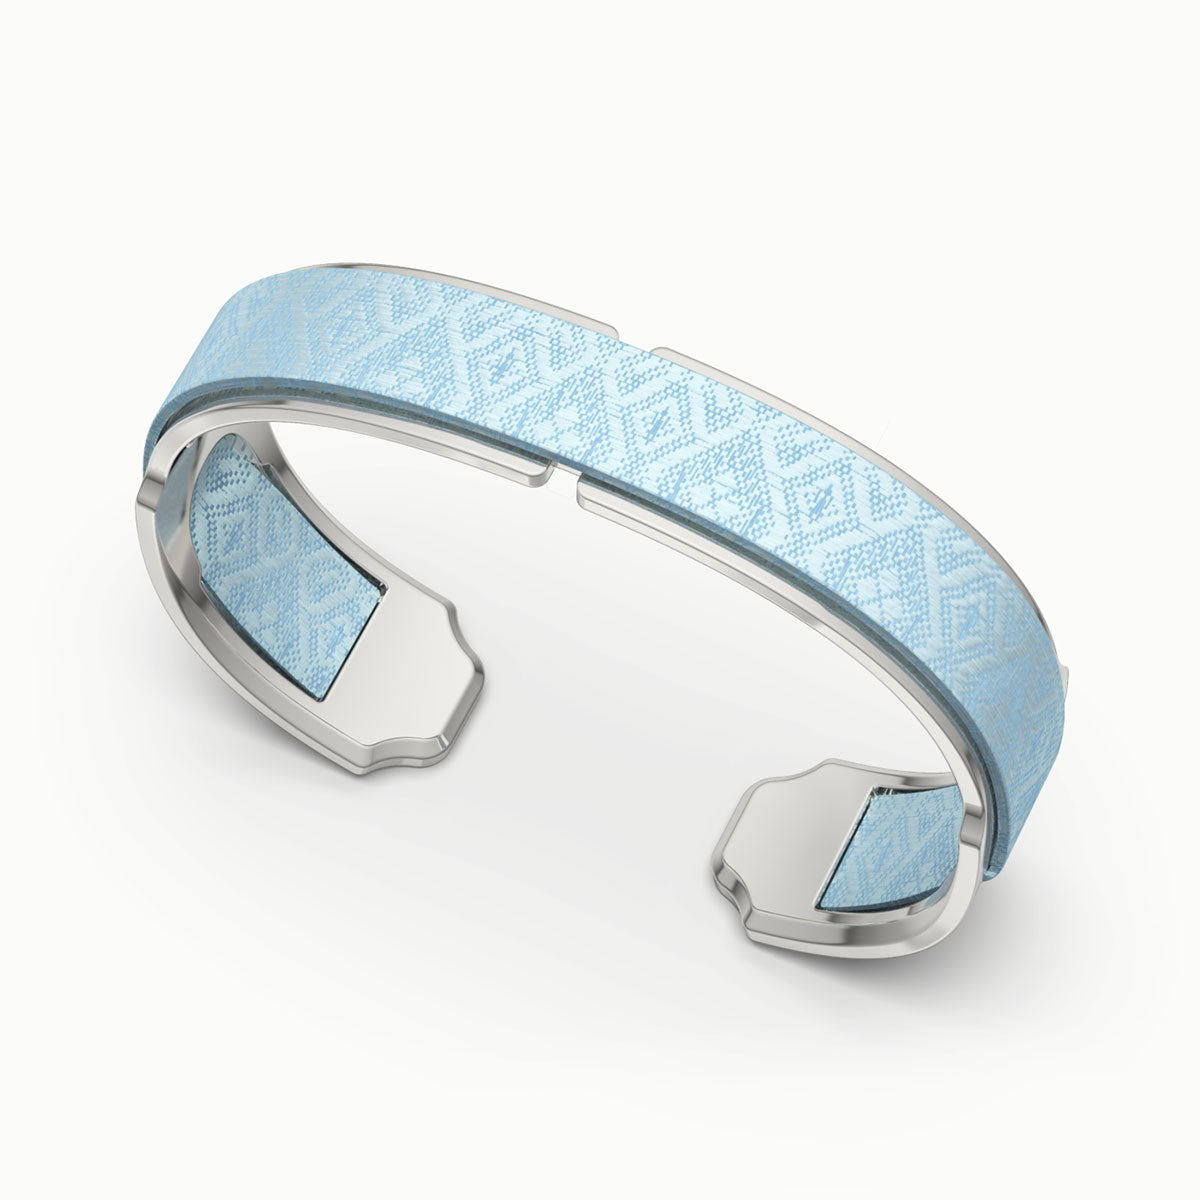 Bare Silk Cuff - Mist Blue